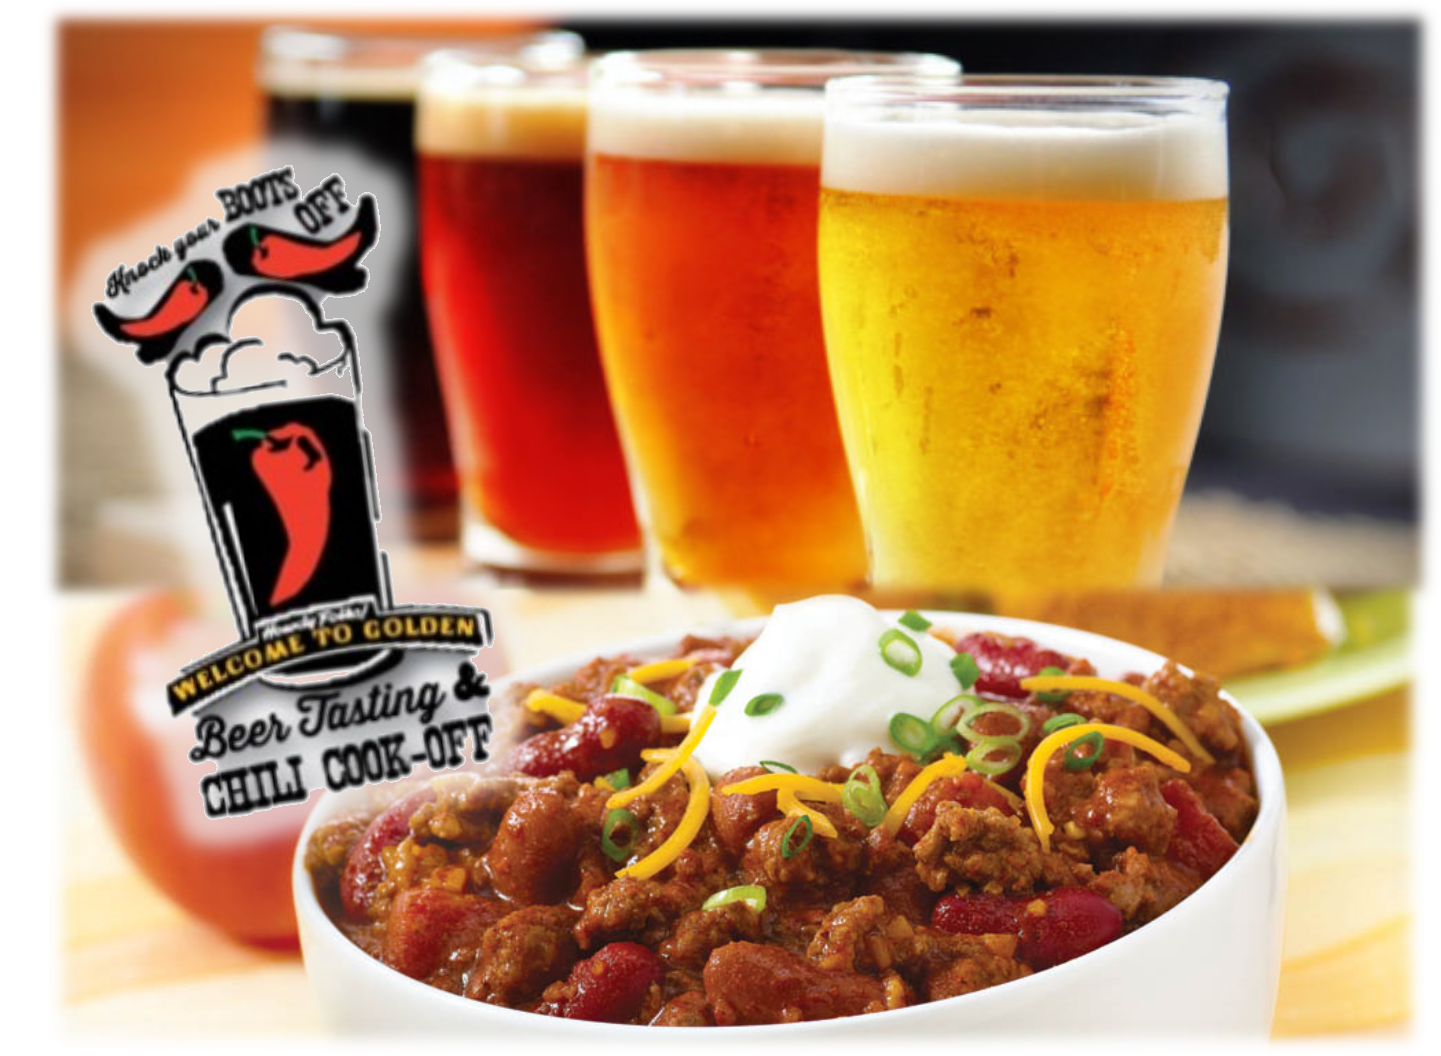 2018 Golden Chili Cook-Off and Beer Tasting